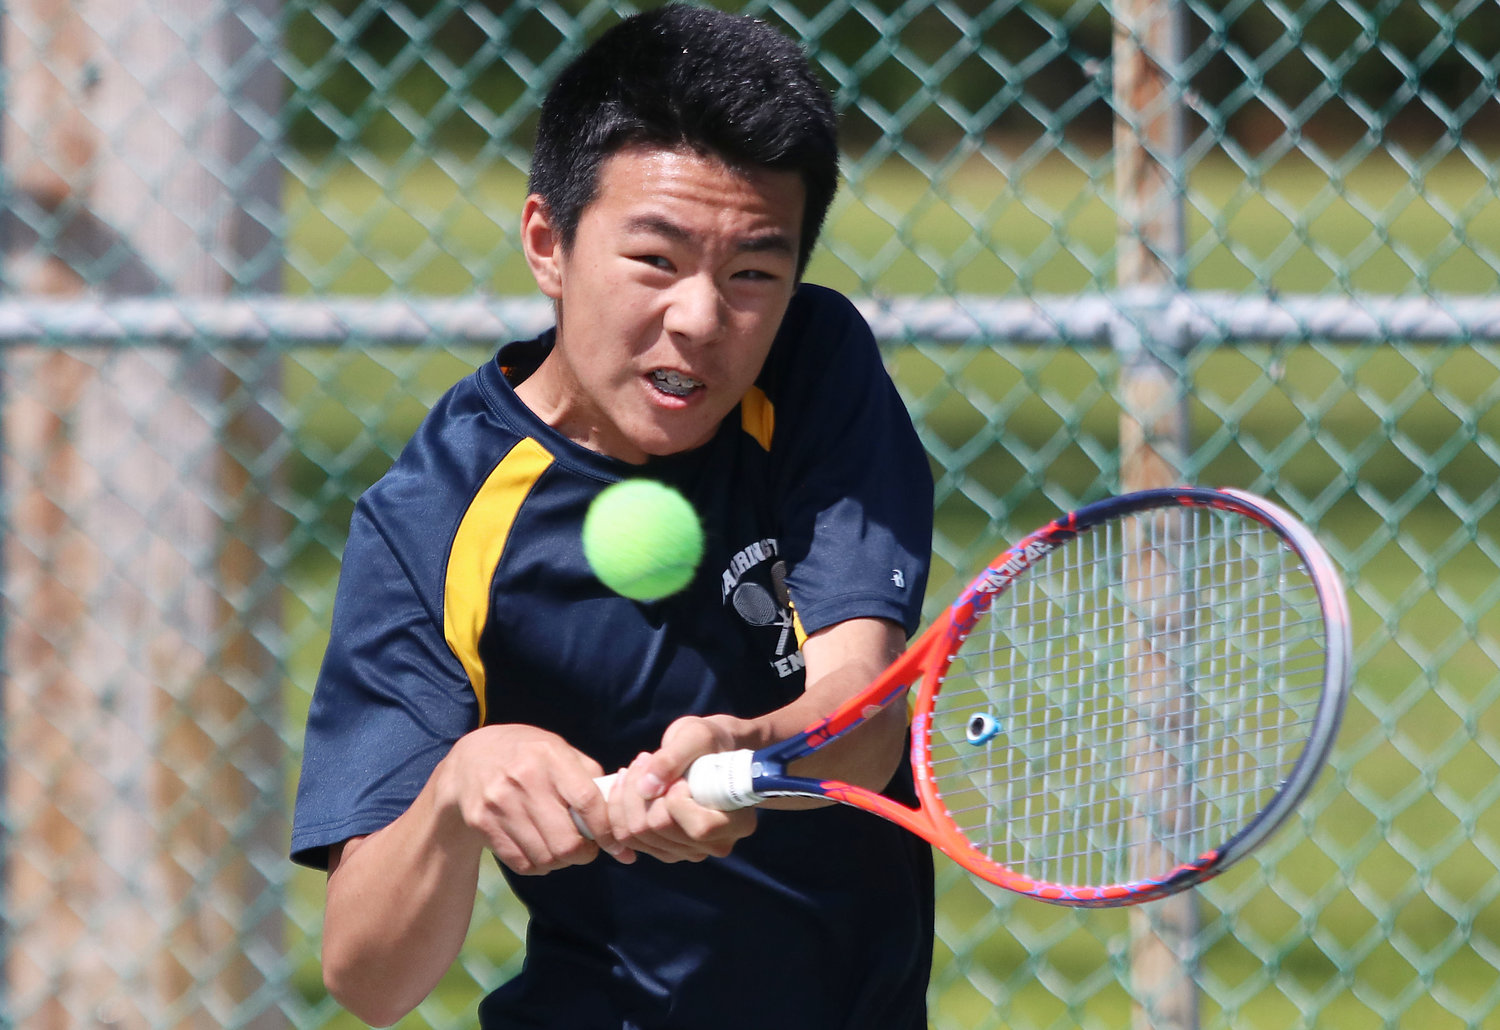 Barrington High School's Eric Zhang lines up a shot during the Division I finals on Saturday at Slater Park in Pawtucket.